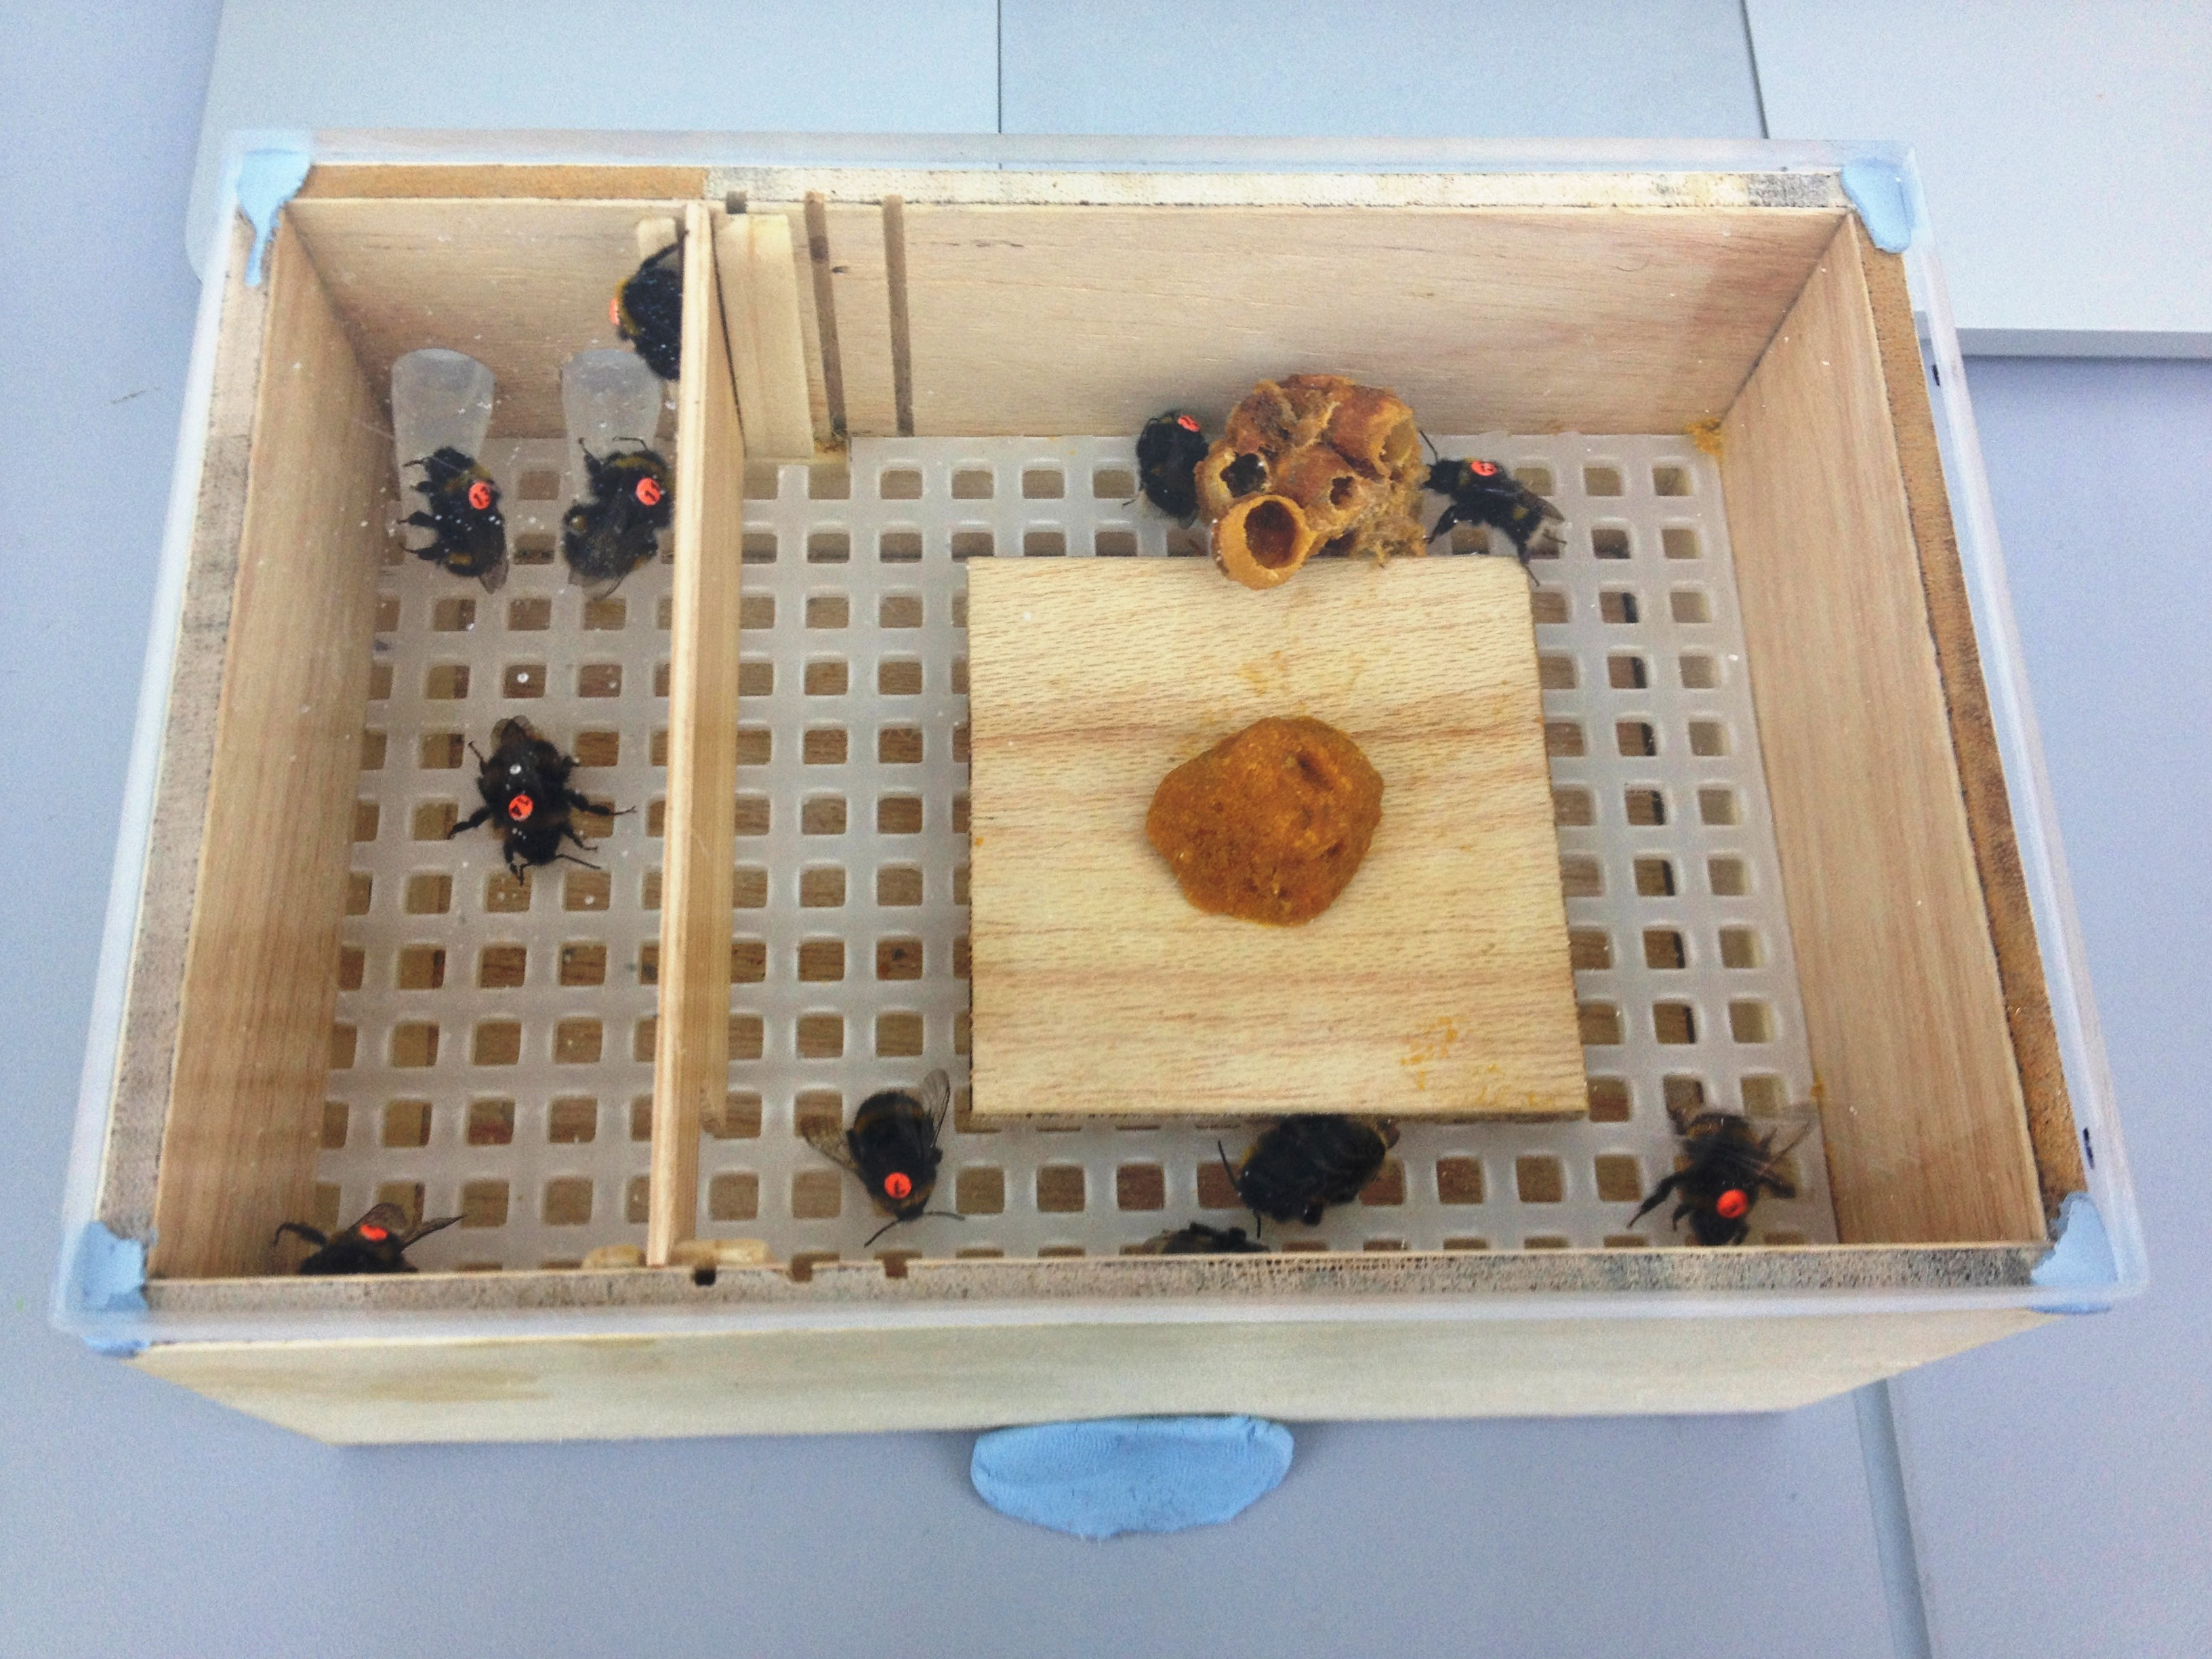 Figure 1. The first prototype of my microcolony set-up. The bees feed on a sugar solution from two Eppendorf tubes in the top left of the box. The orange ball in the middle is pollen and the lump off to the side is a piece of wax from the parental colony.